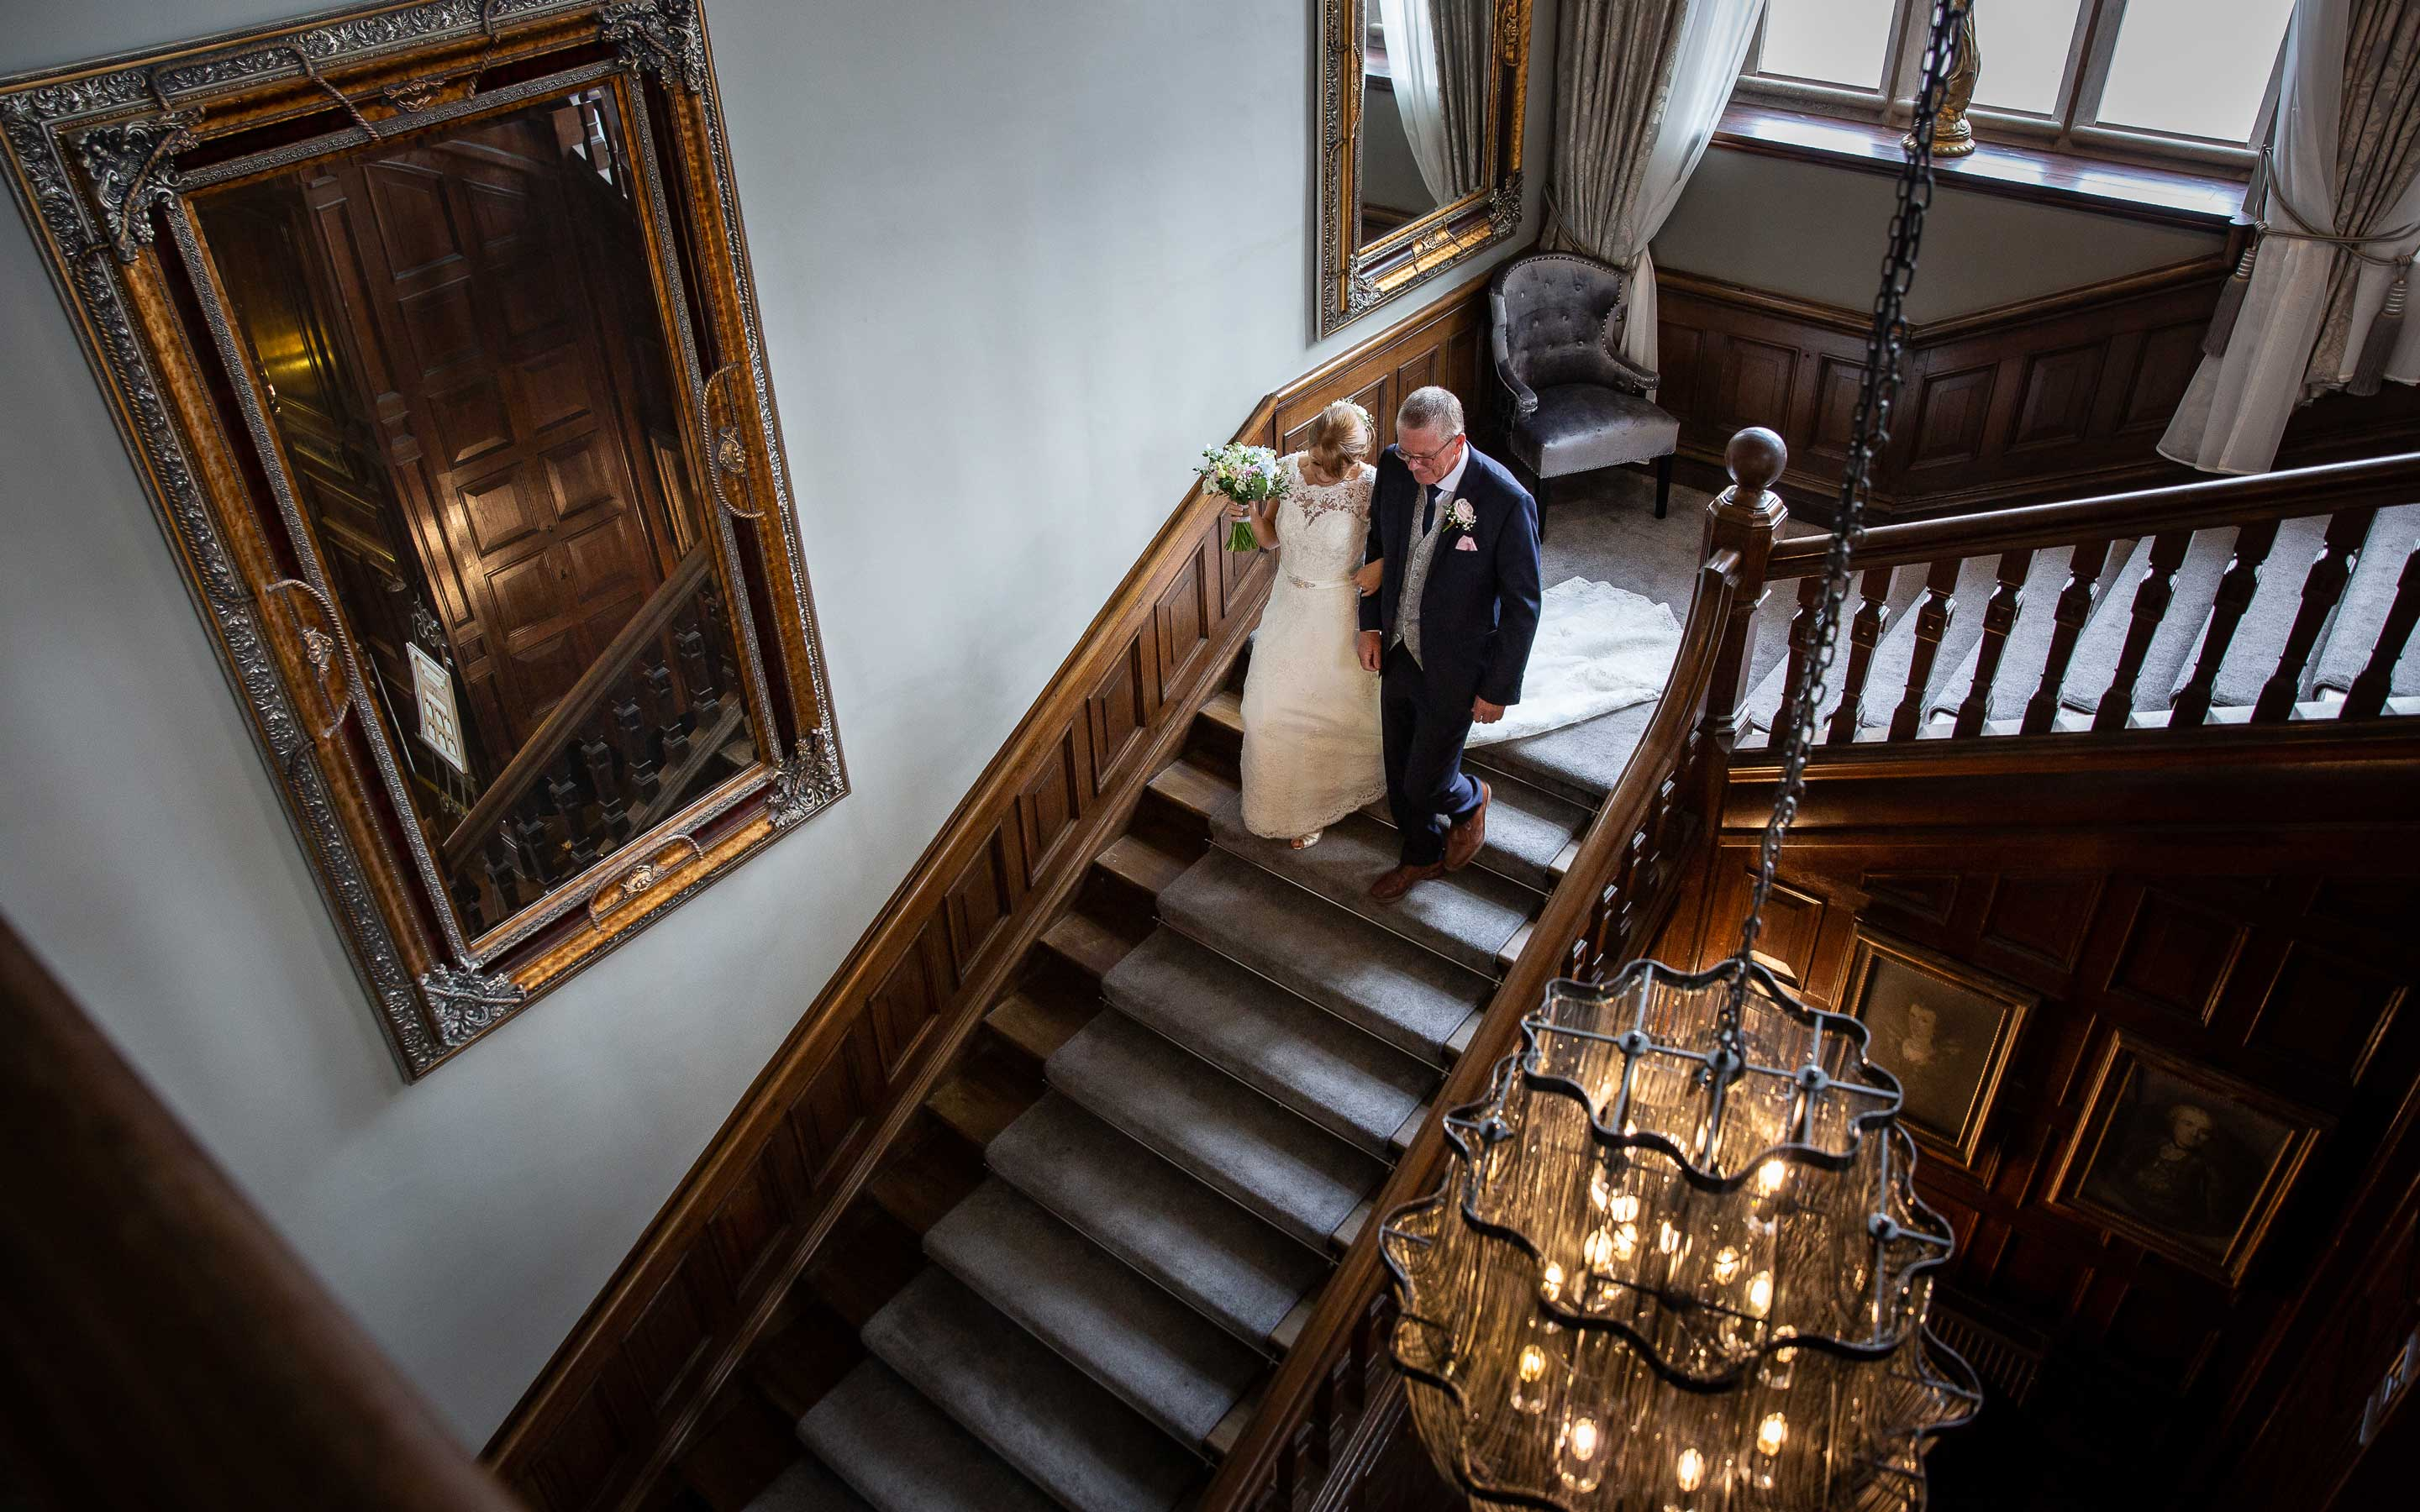 Bride walking down the stairs with her father